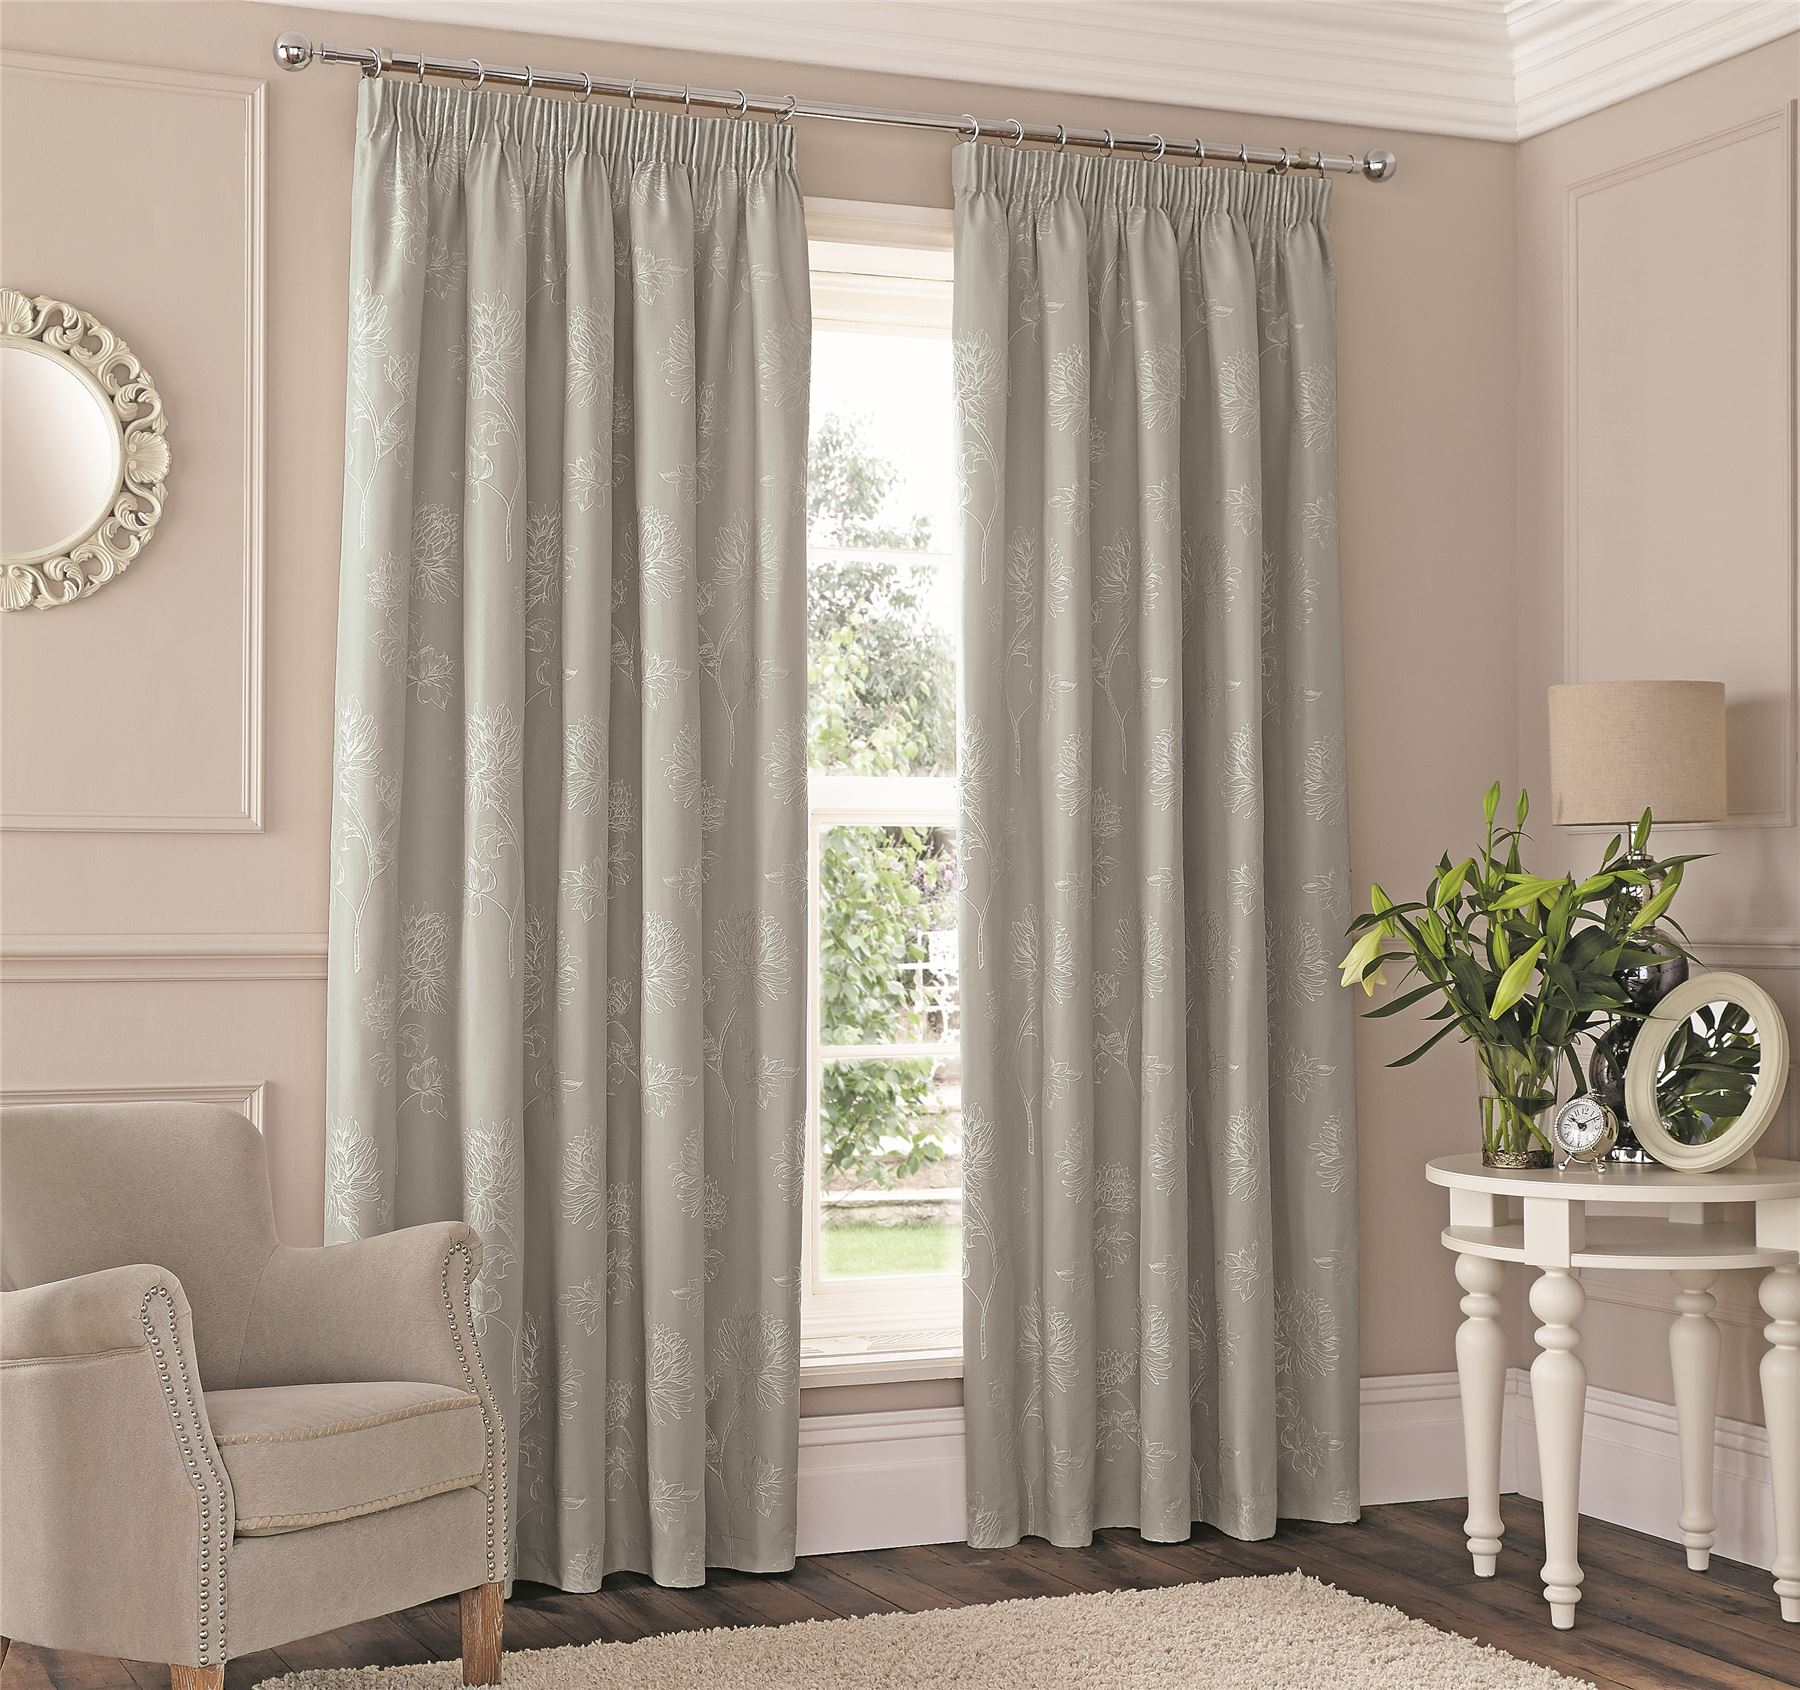 silver embroidered floral lined pencil pleat curtains drapes 7 sizes ebay. Black Bedroom Furniture Sets. Home Design Ideas